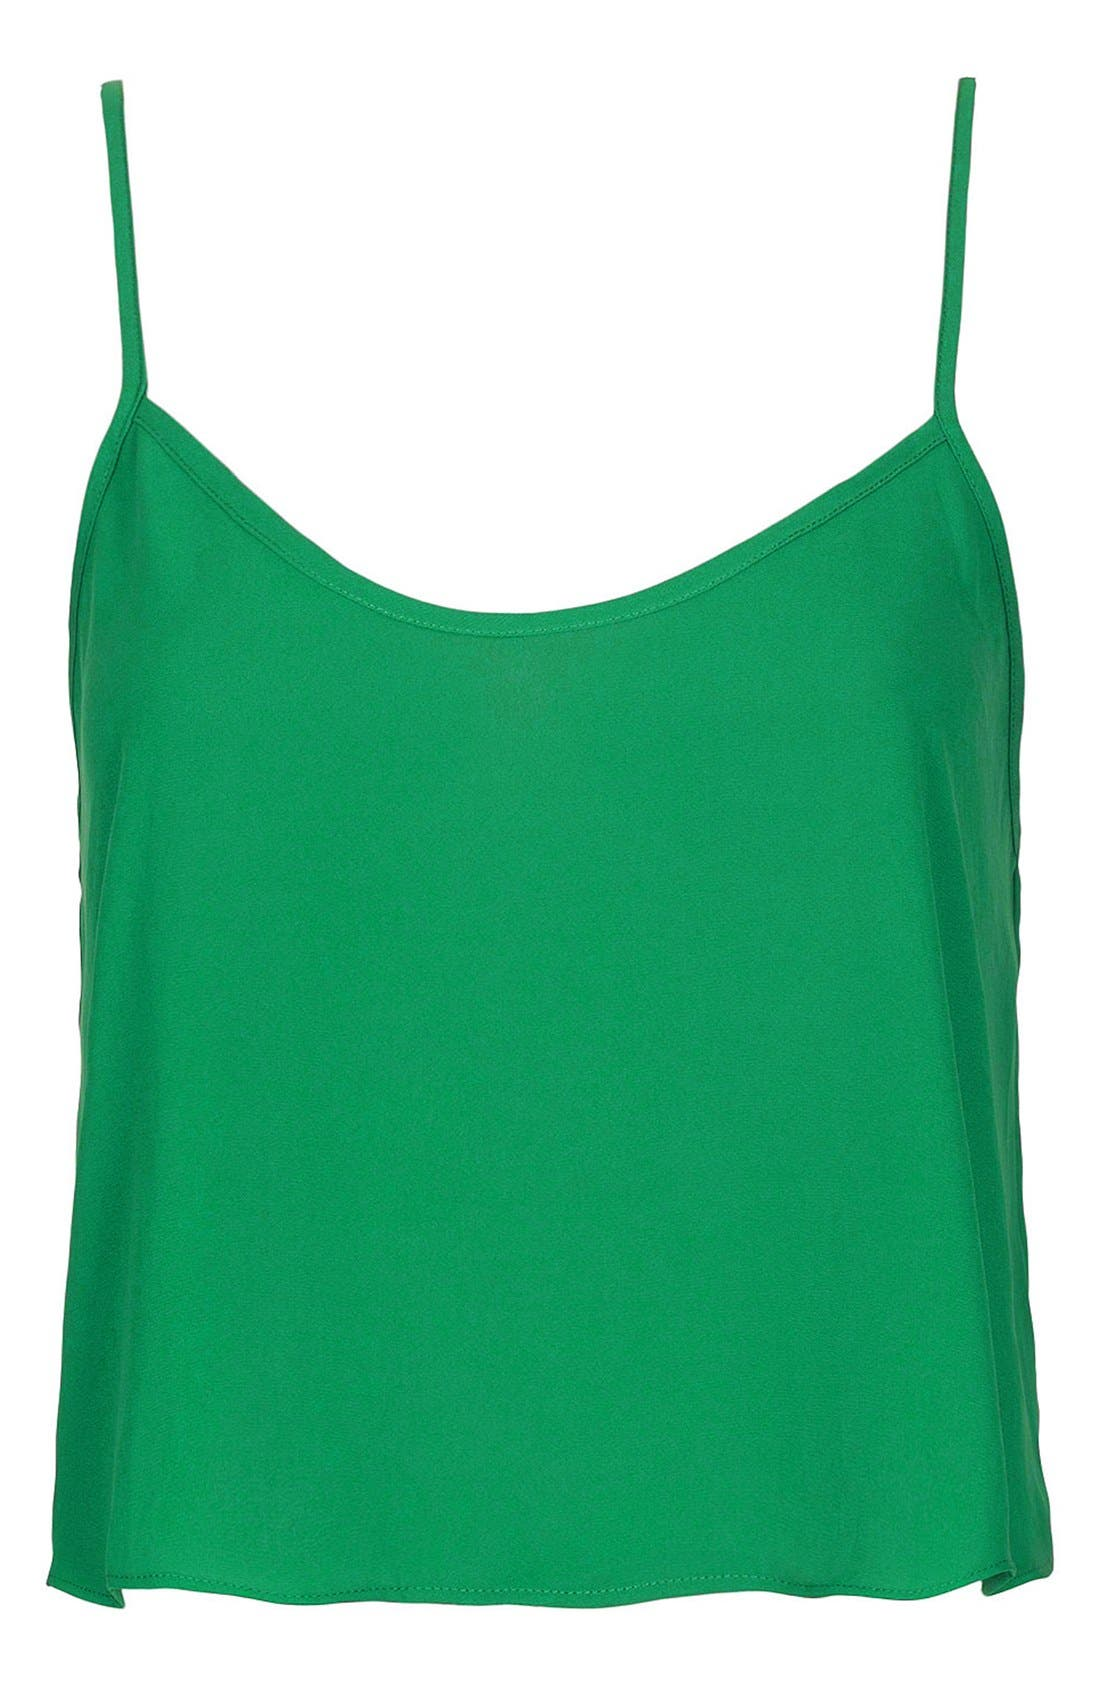 Alternate Image 1 Selected - Topshop 'Pasha' Crop Camisole